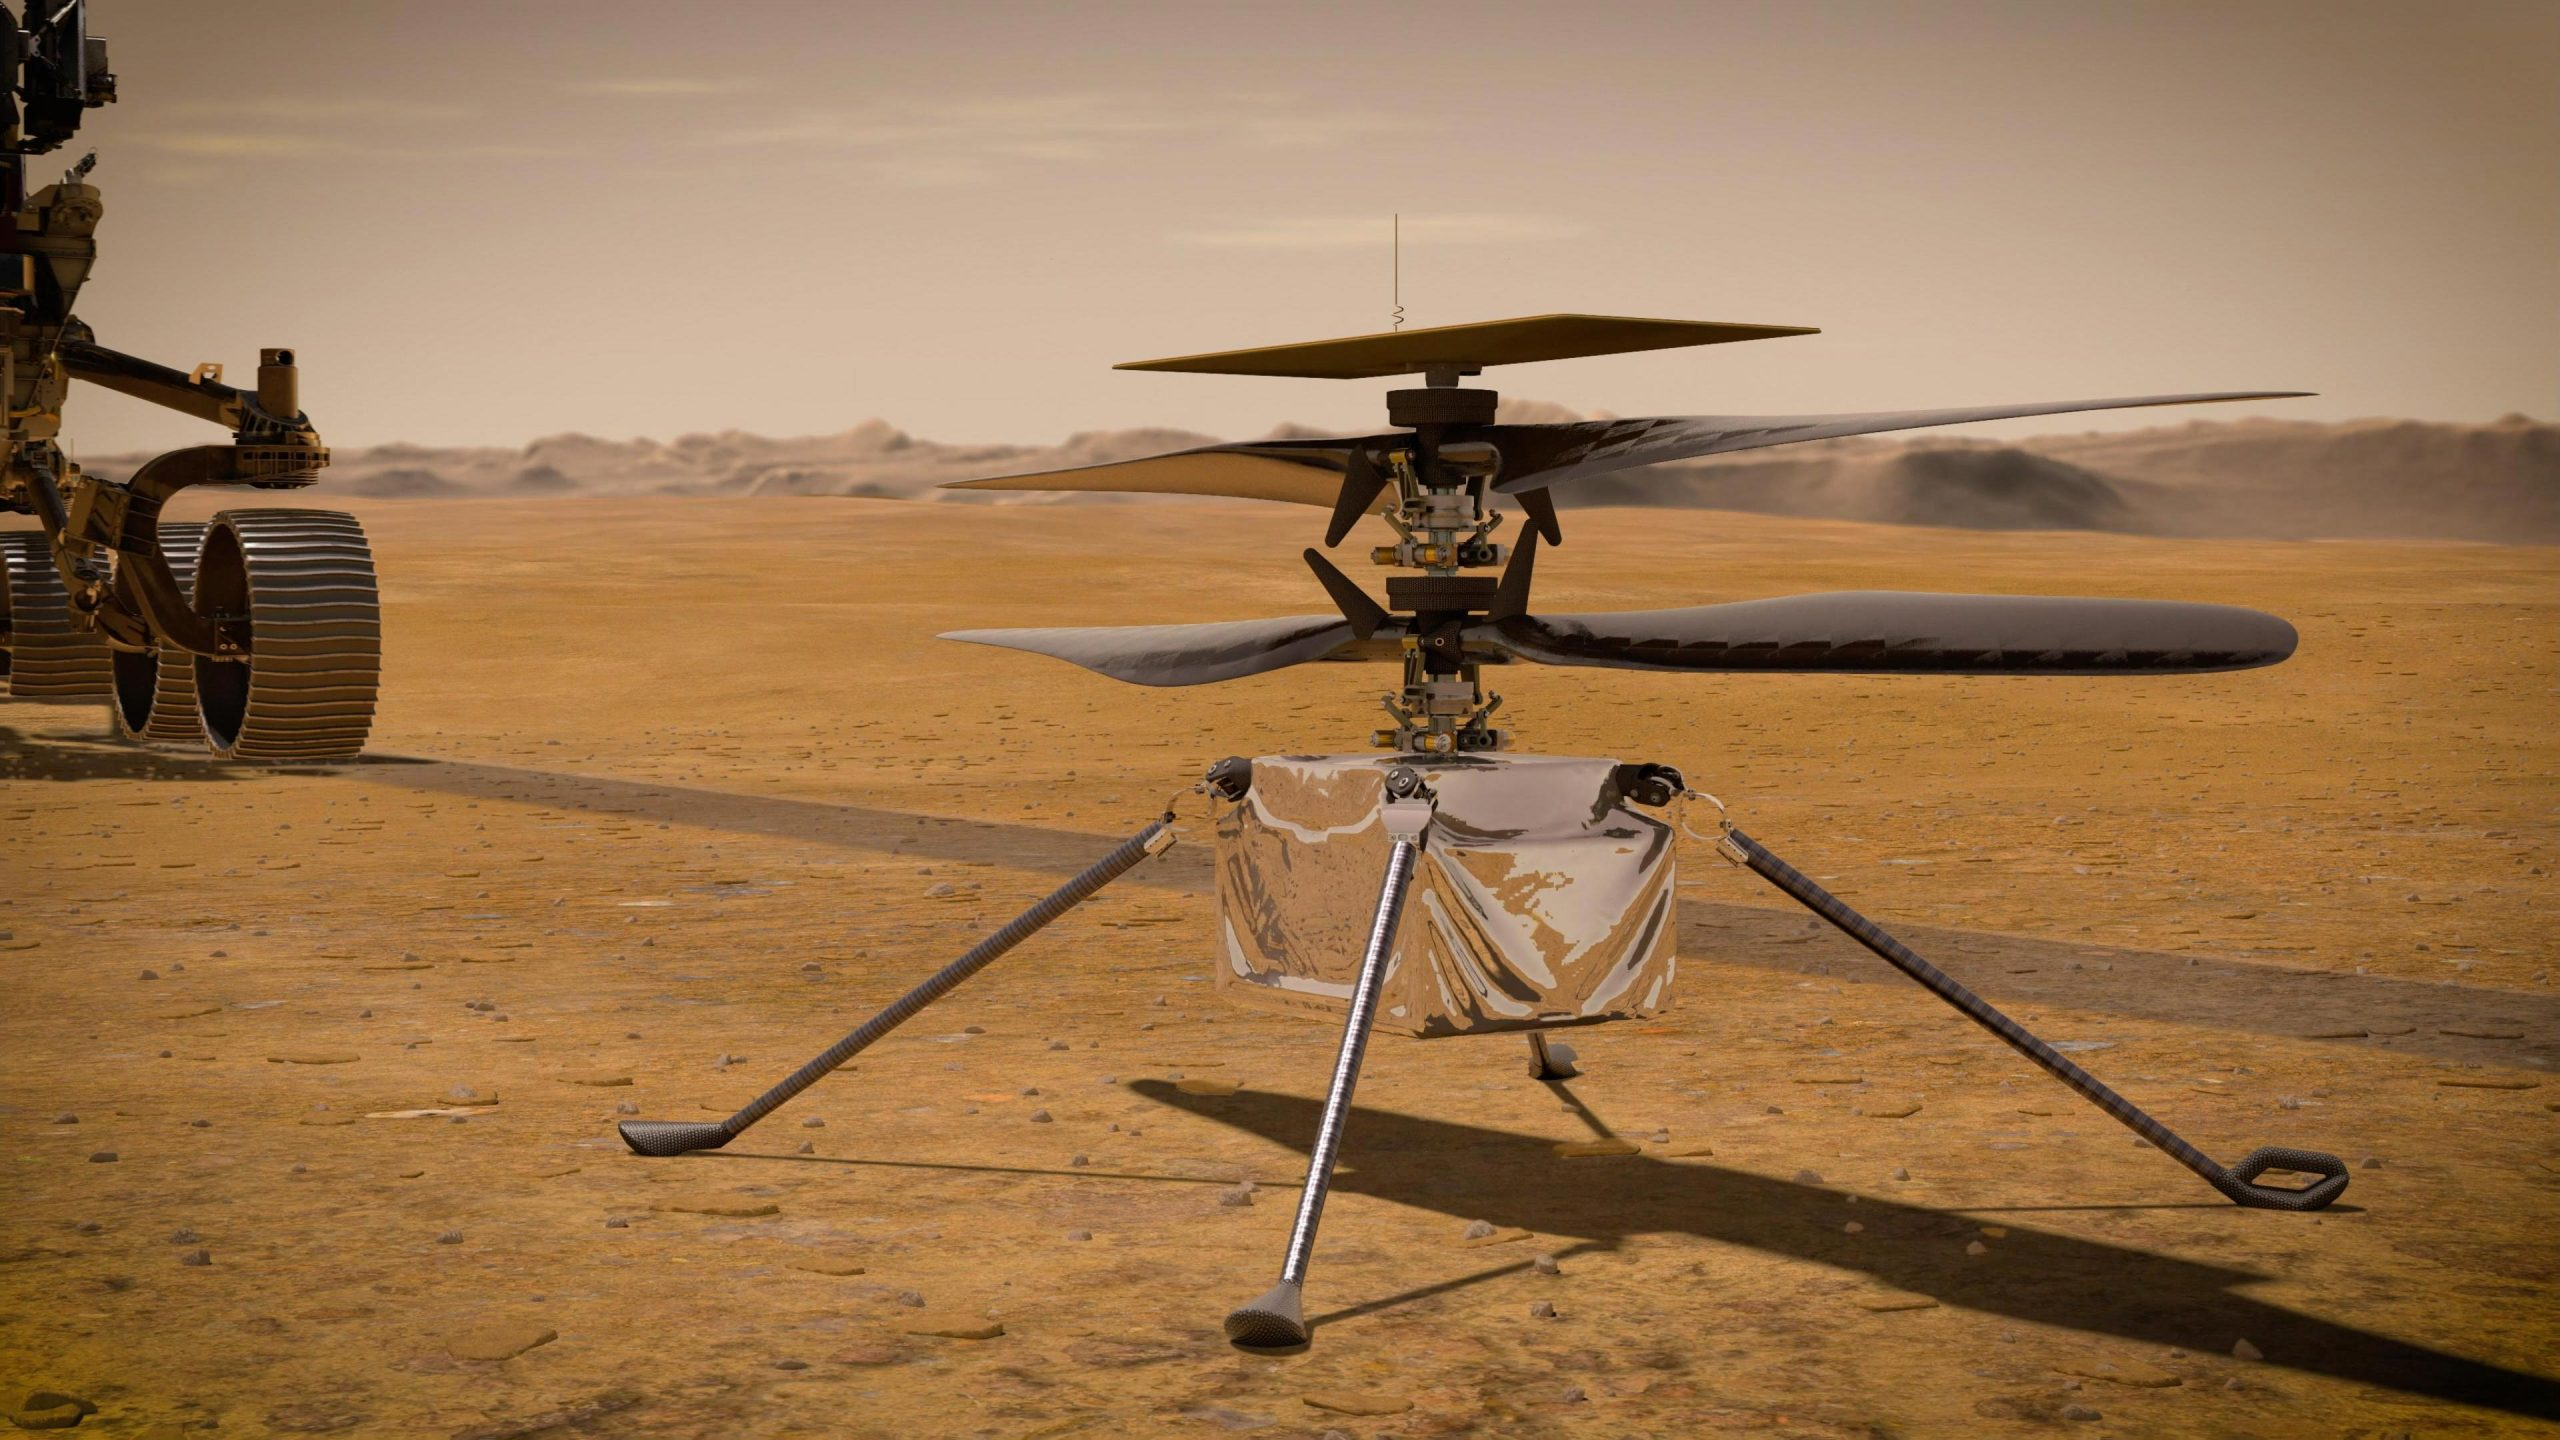 NASA's Ingenuity Mars Helicopter: 6 Things to Know About ...